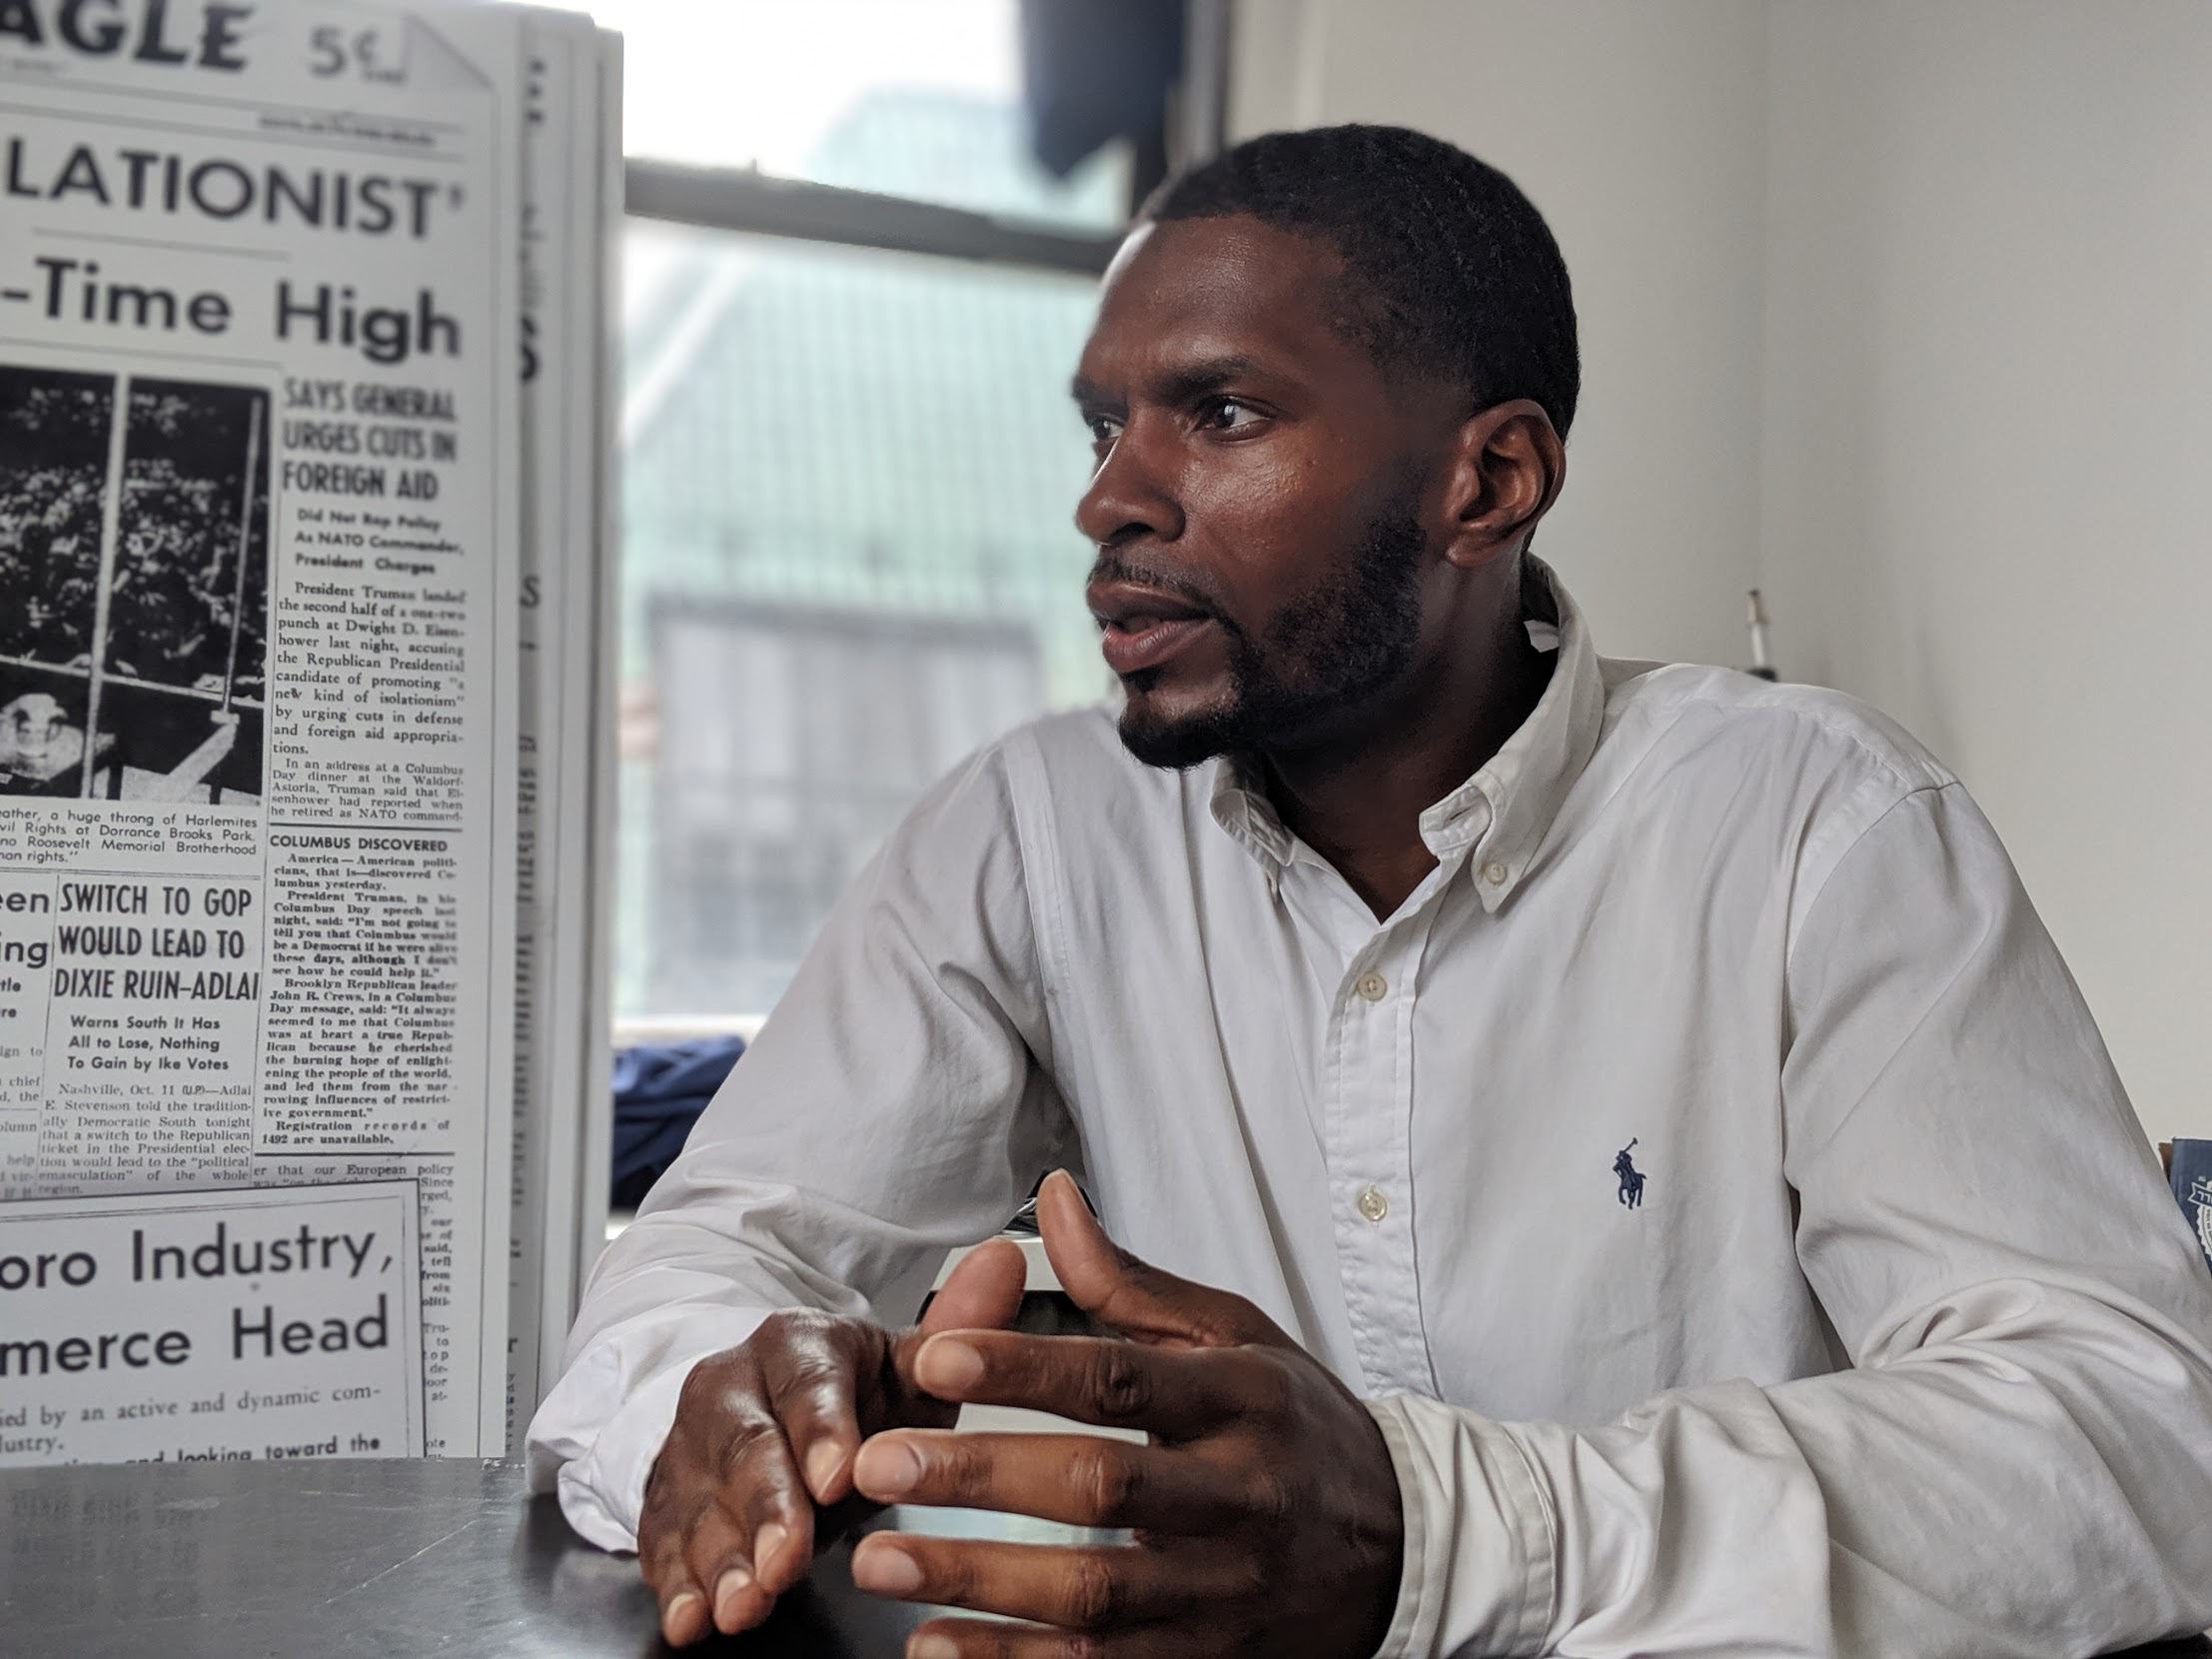 Shawn Williams attended Columbia University after being released from prison for the final time in 2010.  Eagle  photo by Phineas Rueckert.